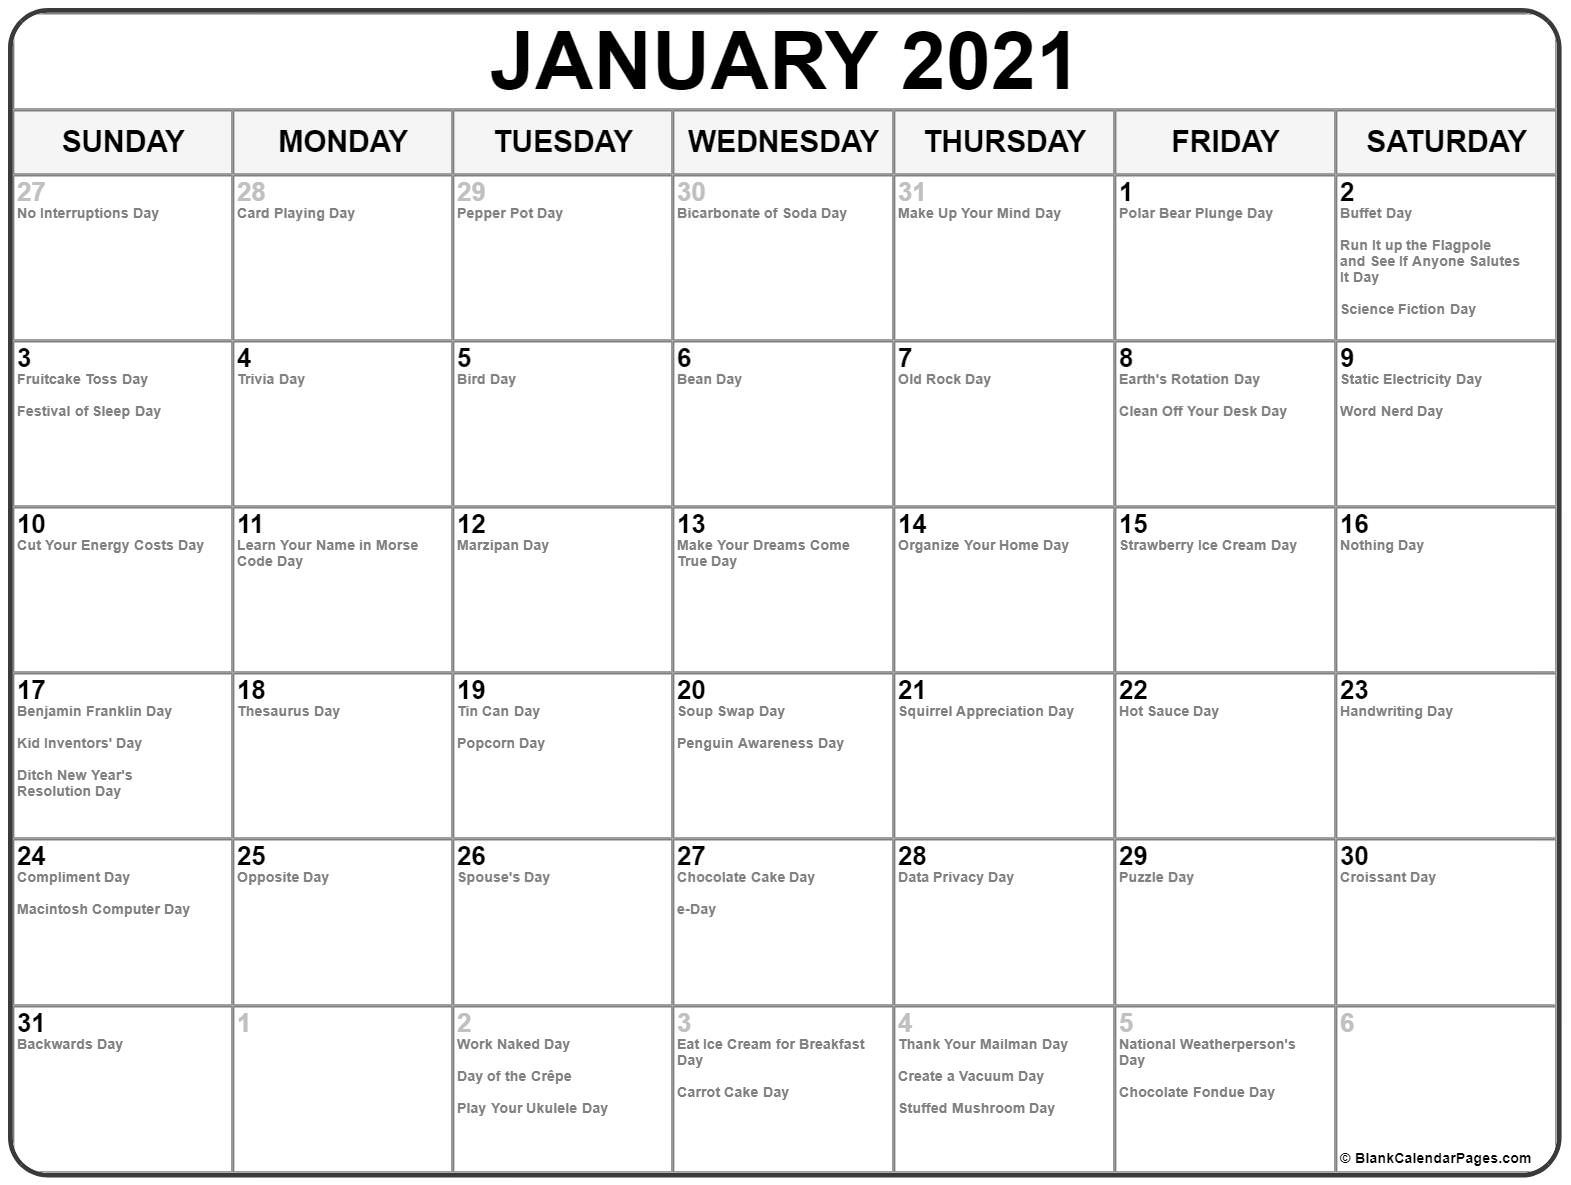 Collection Of January 2021 Calendars With Holidays-National Wellness Calendar 2021